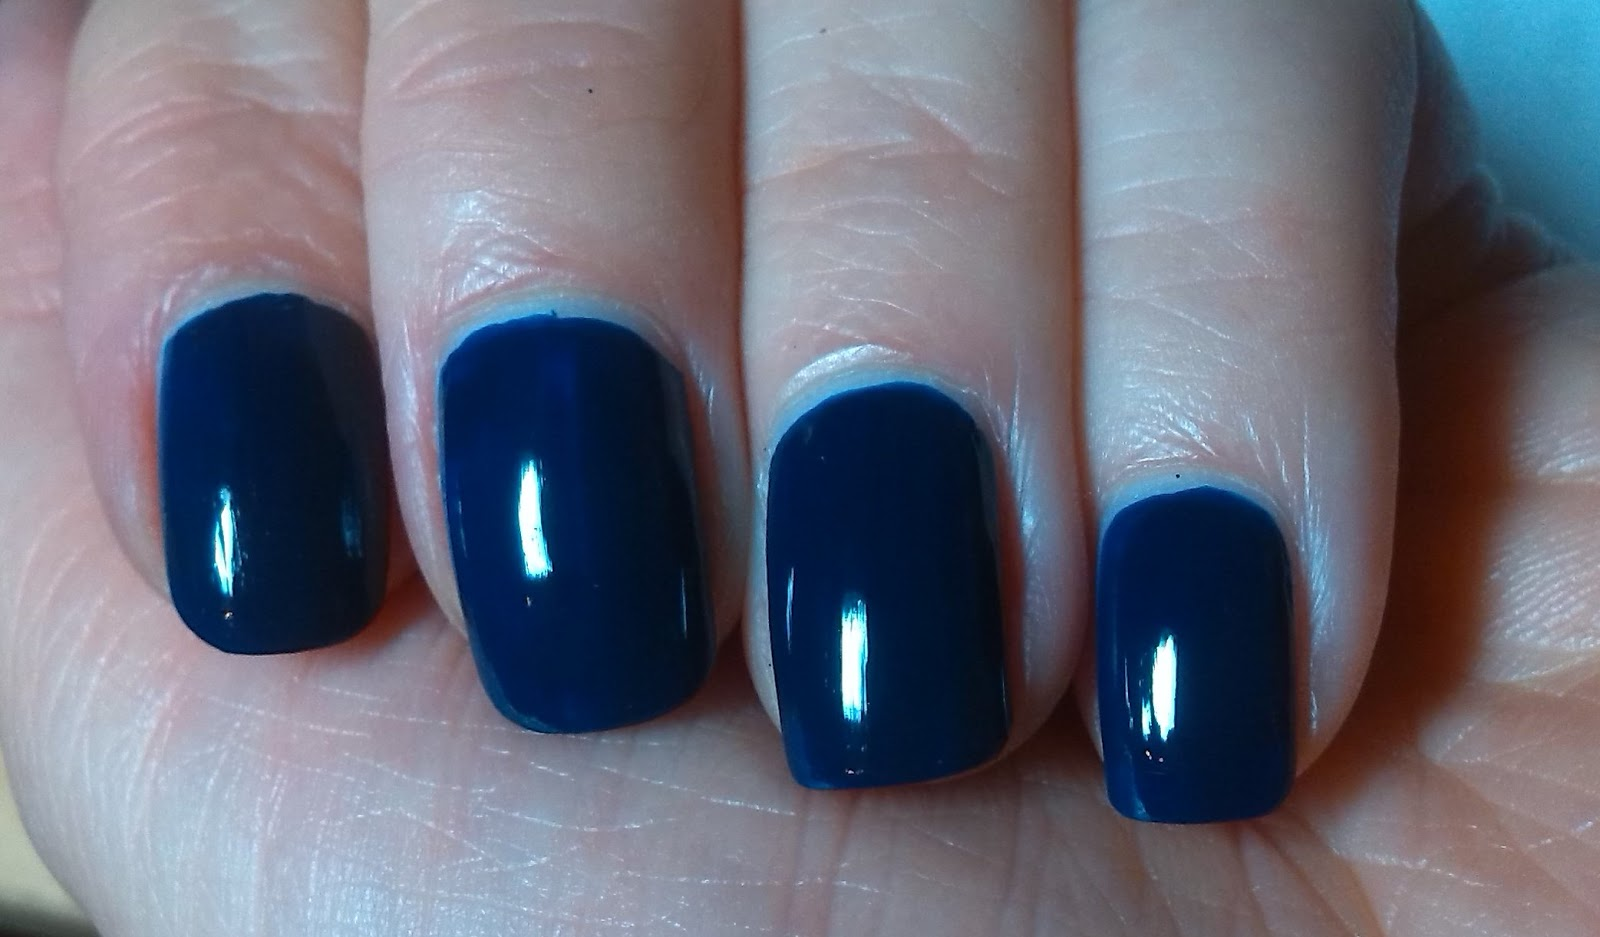 Butter London Royal Navy